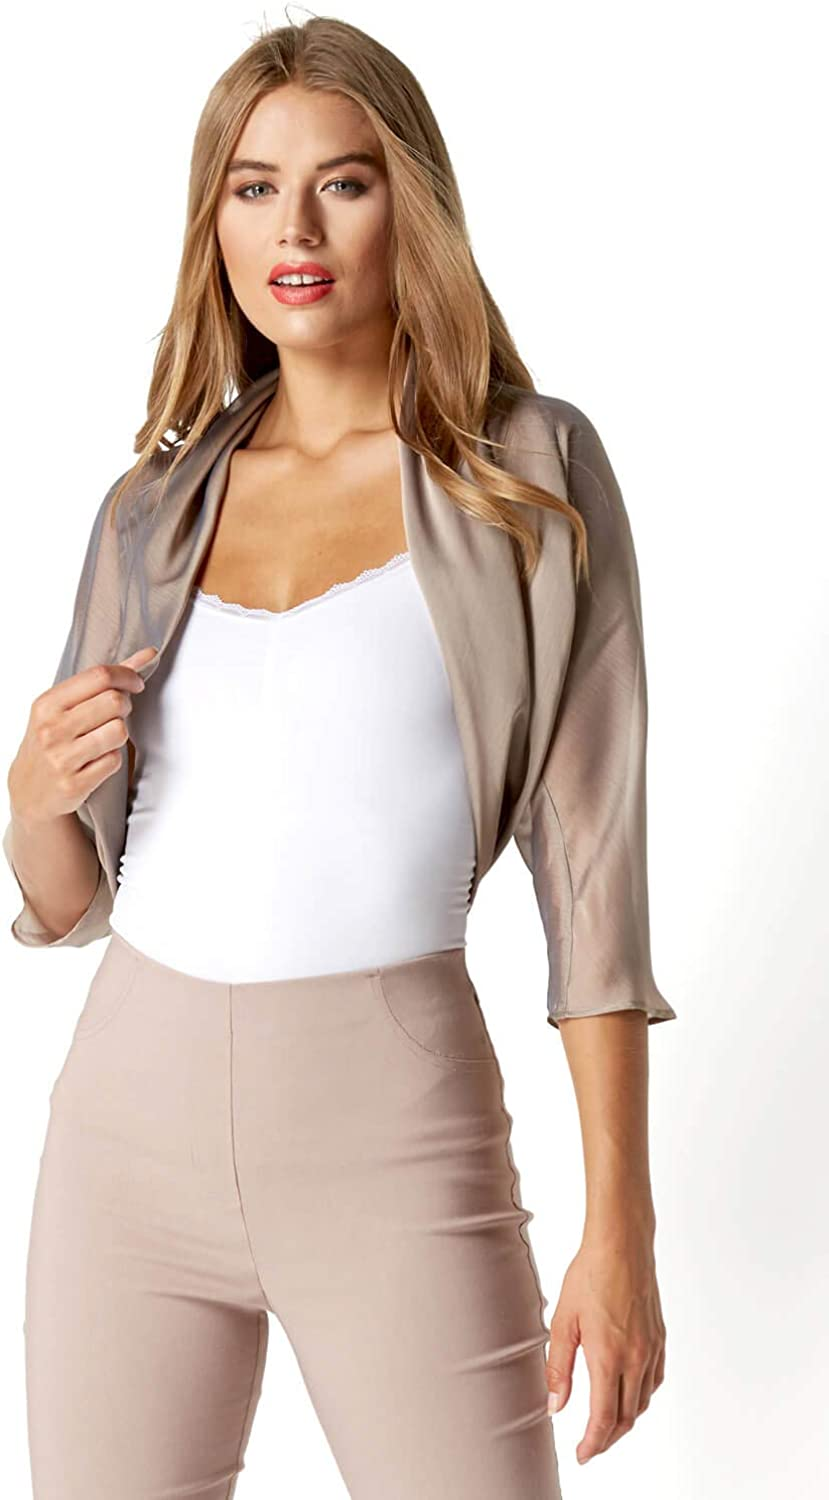 Roman Originals Women Chiffon Bolero Shrug Jacket with Ruched Hem Ladies Formal Smart Sheer Mesh Wrap Shimmer Crop Cardigan Wedding Guest Cover Up 1950s Blazer